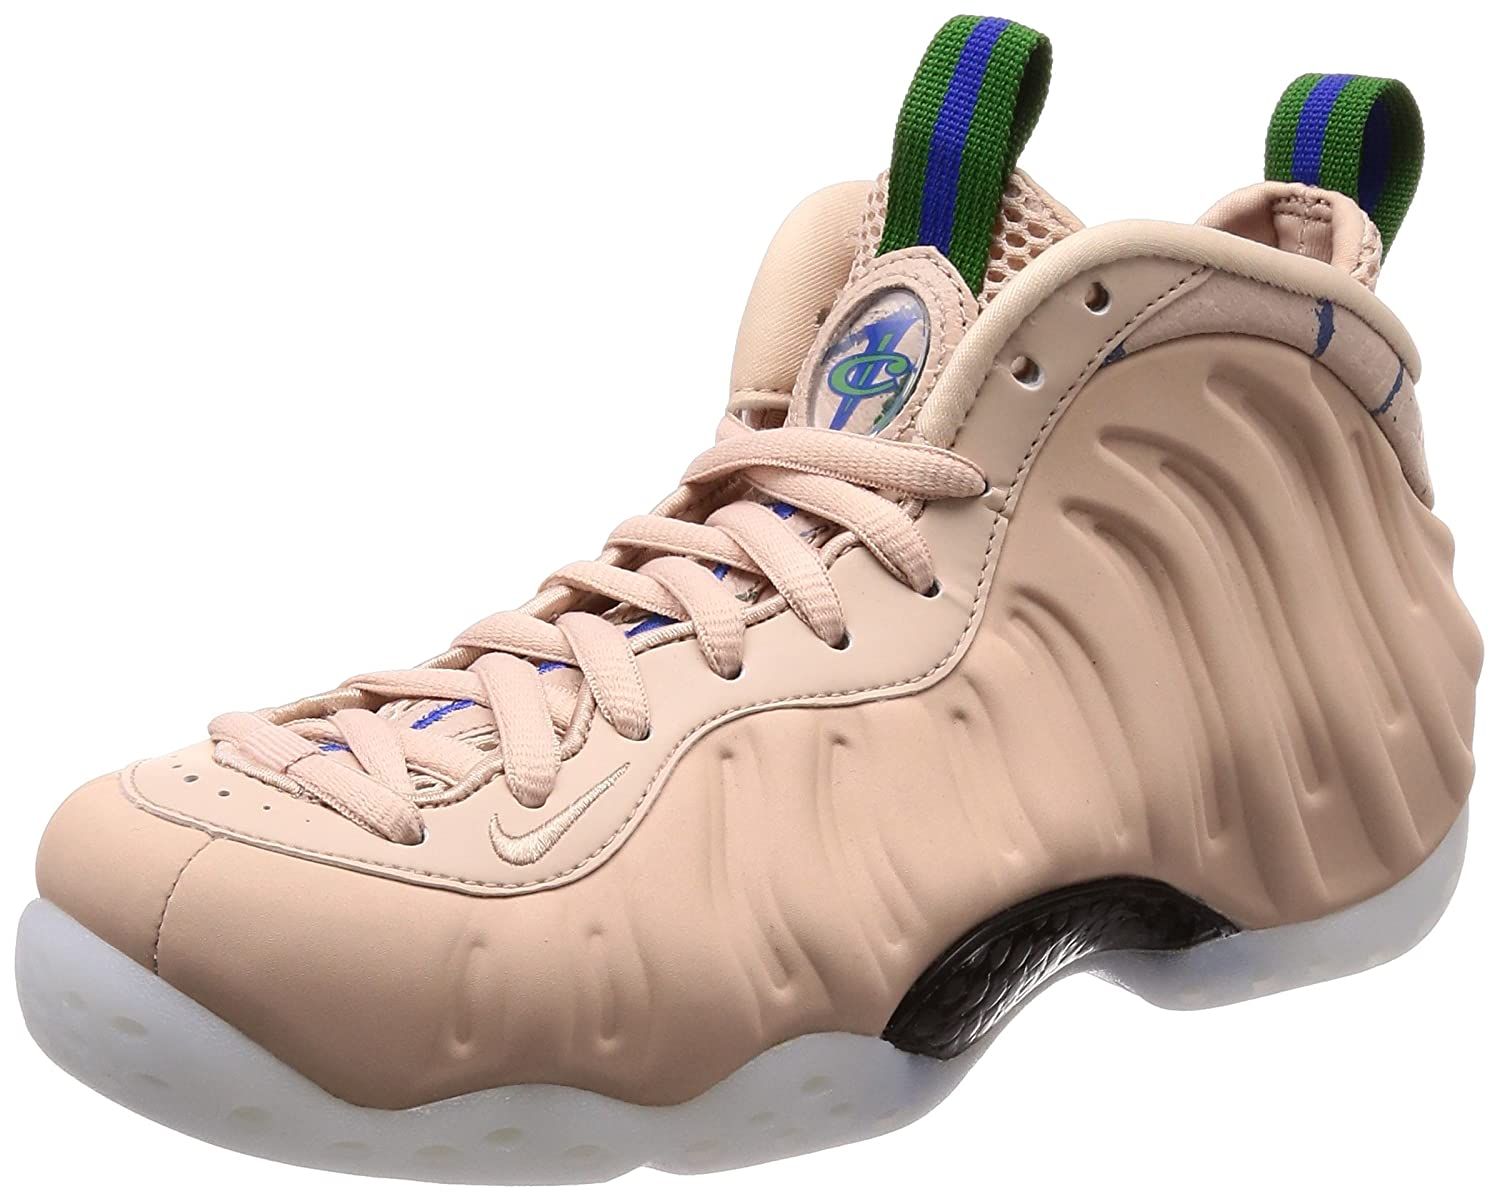 15c57a2adfcd NIKE Women s AIR Foamposite ONE Shoe Particle Beige White (6.5 (6.5 (6.5  B(M) US) B07BH67R9S Parent dcd944